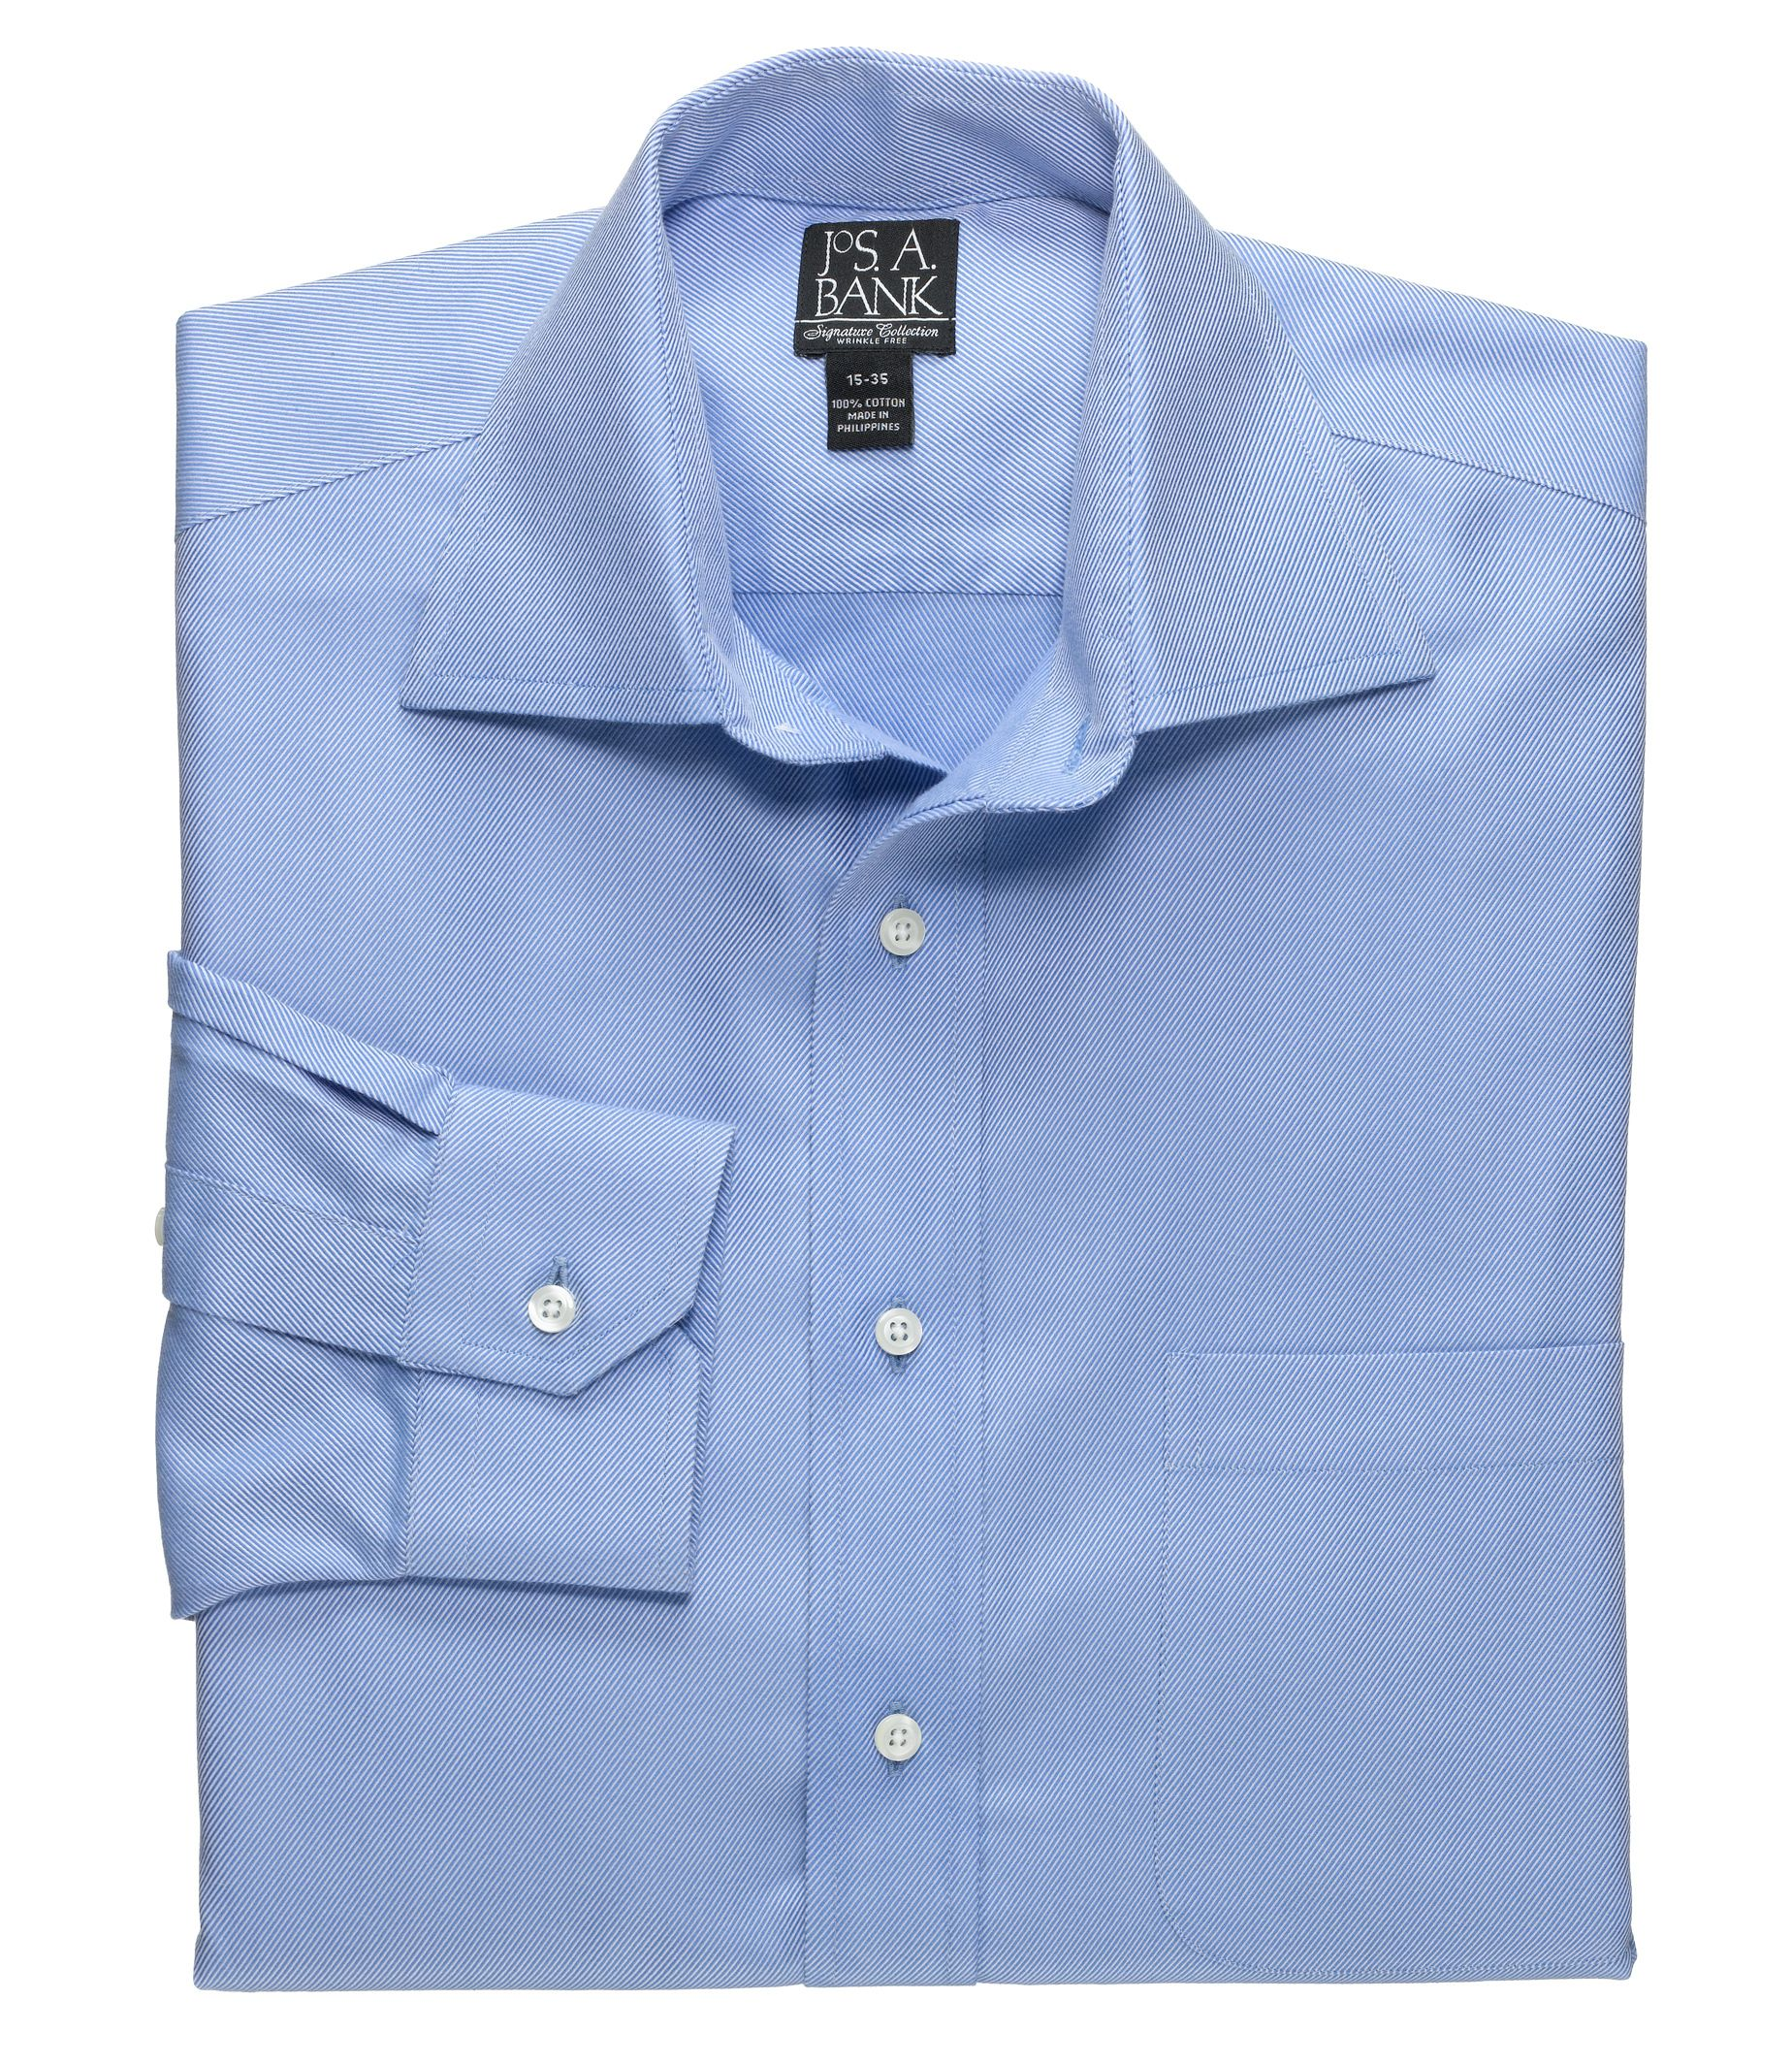 Jos a bank signature wrinkle free dress shirts just 24 Best wrinkle free dress shirts